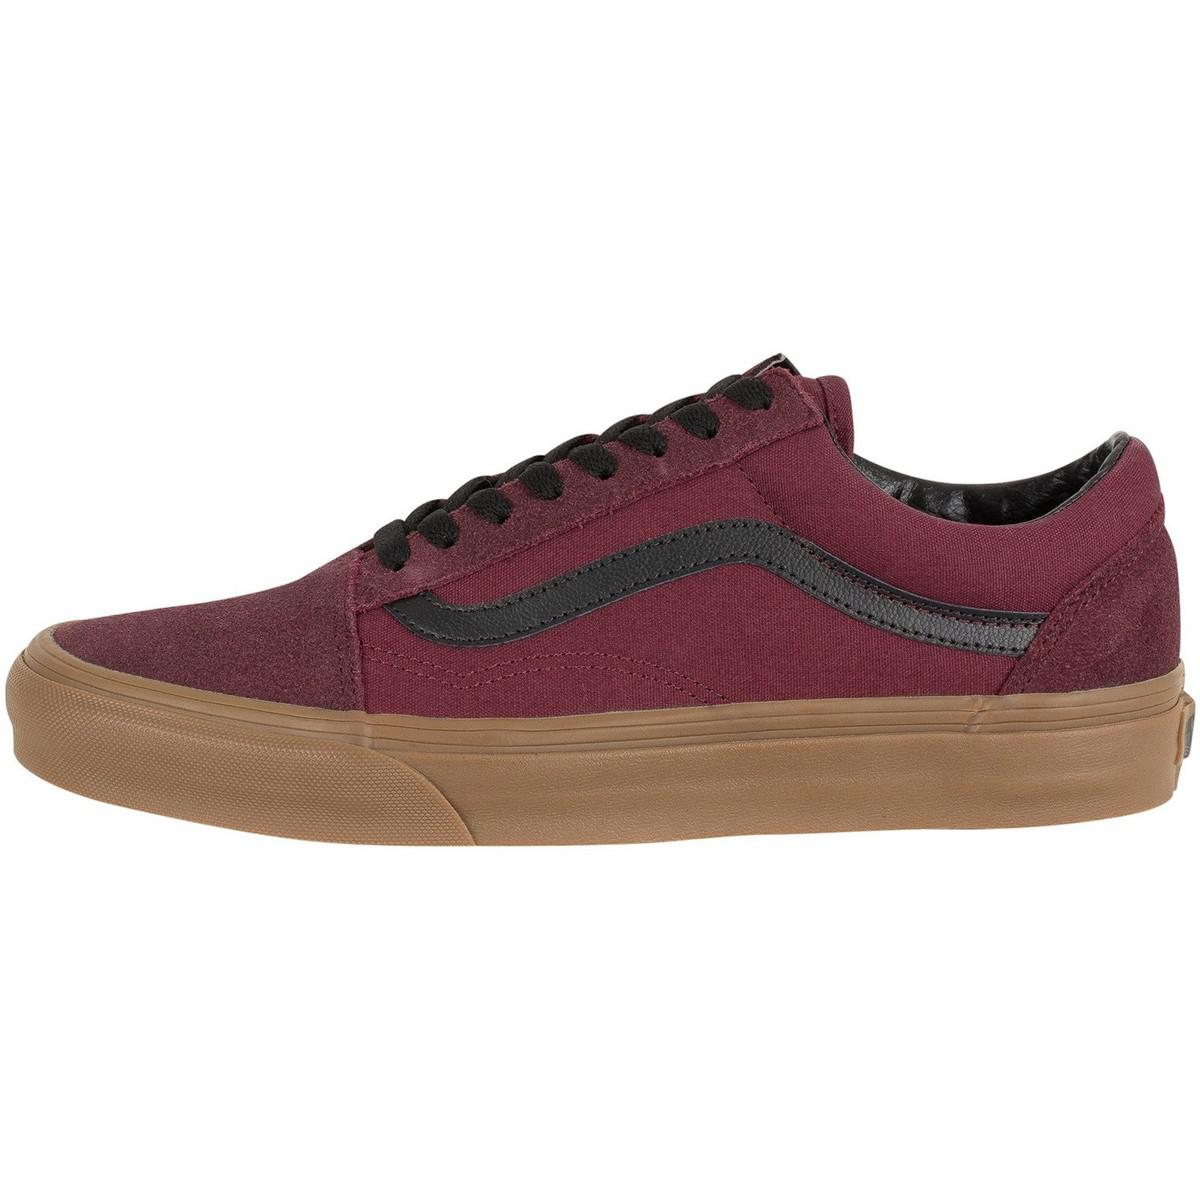 Chaussures Homme Baskets Old Skool Gum Outsole, Rouge Vans pour ...